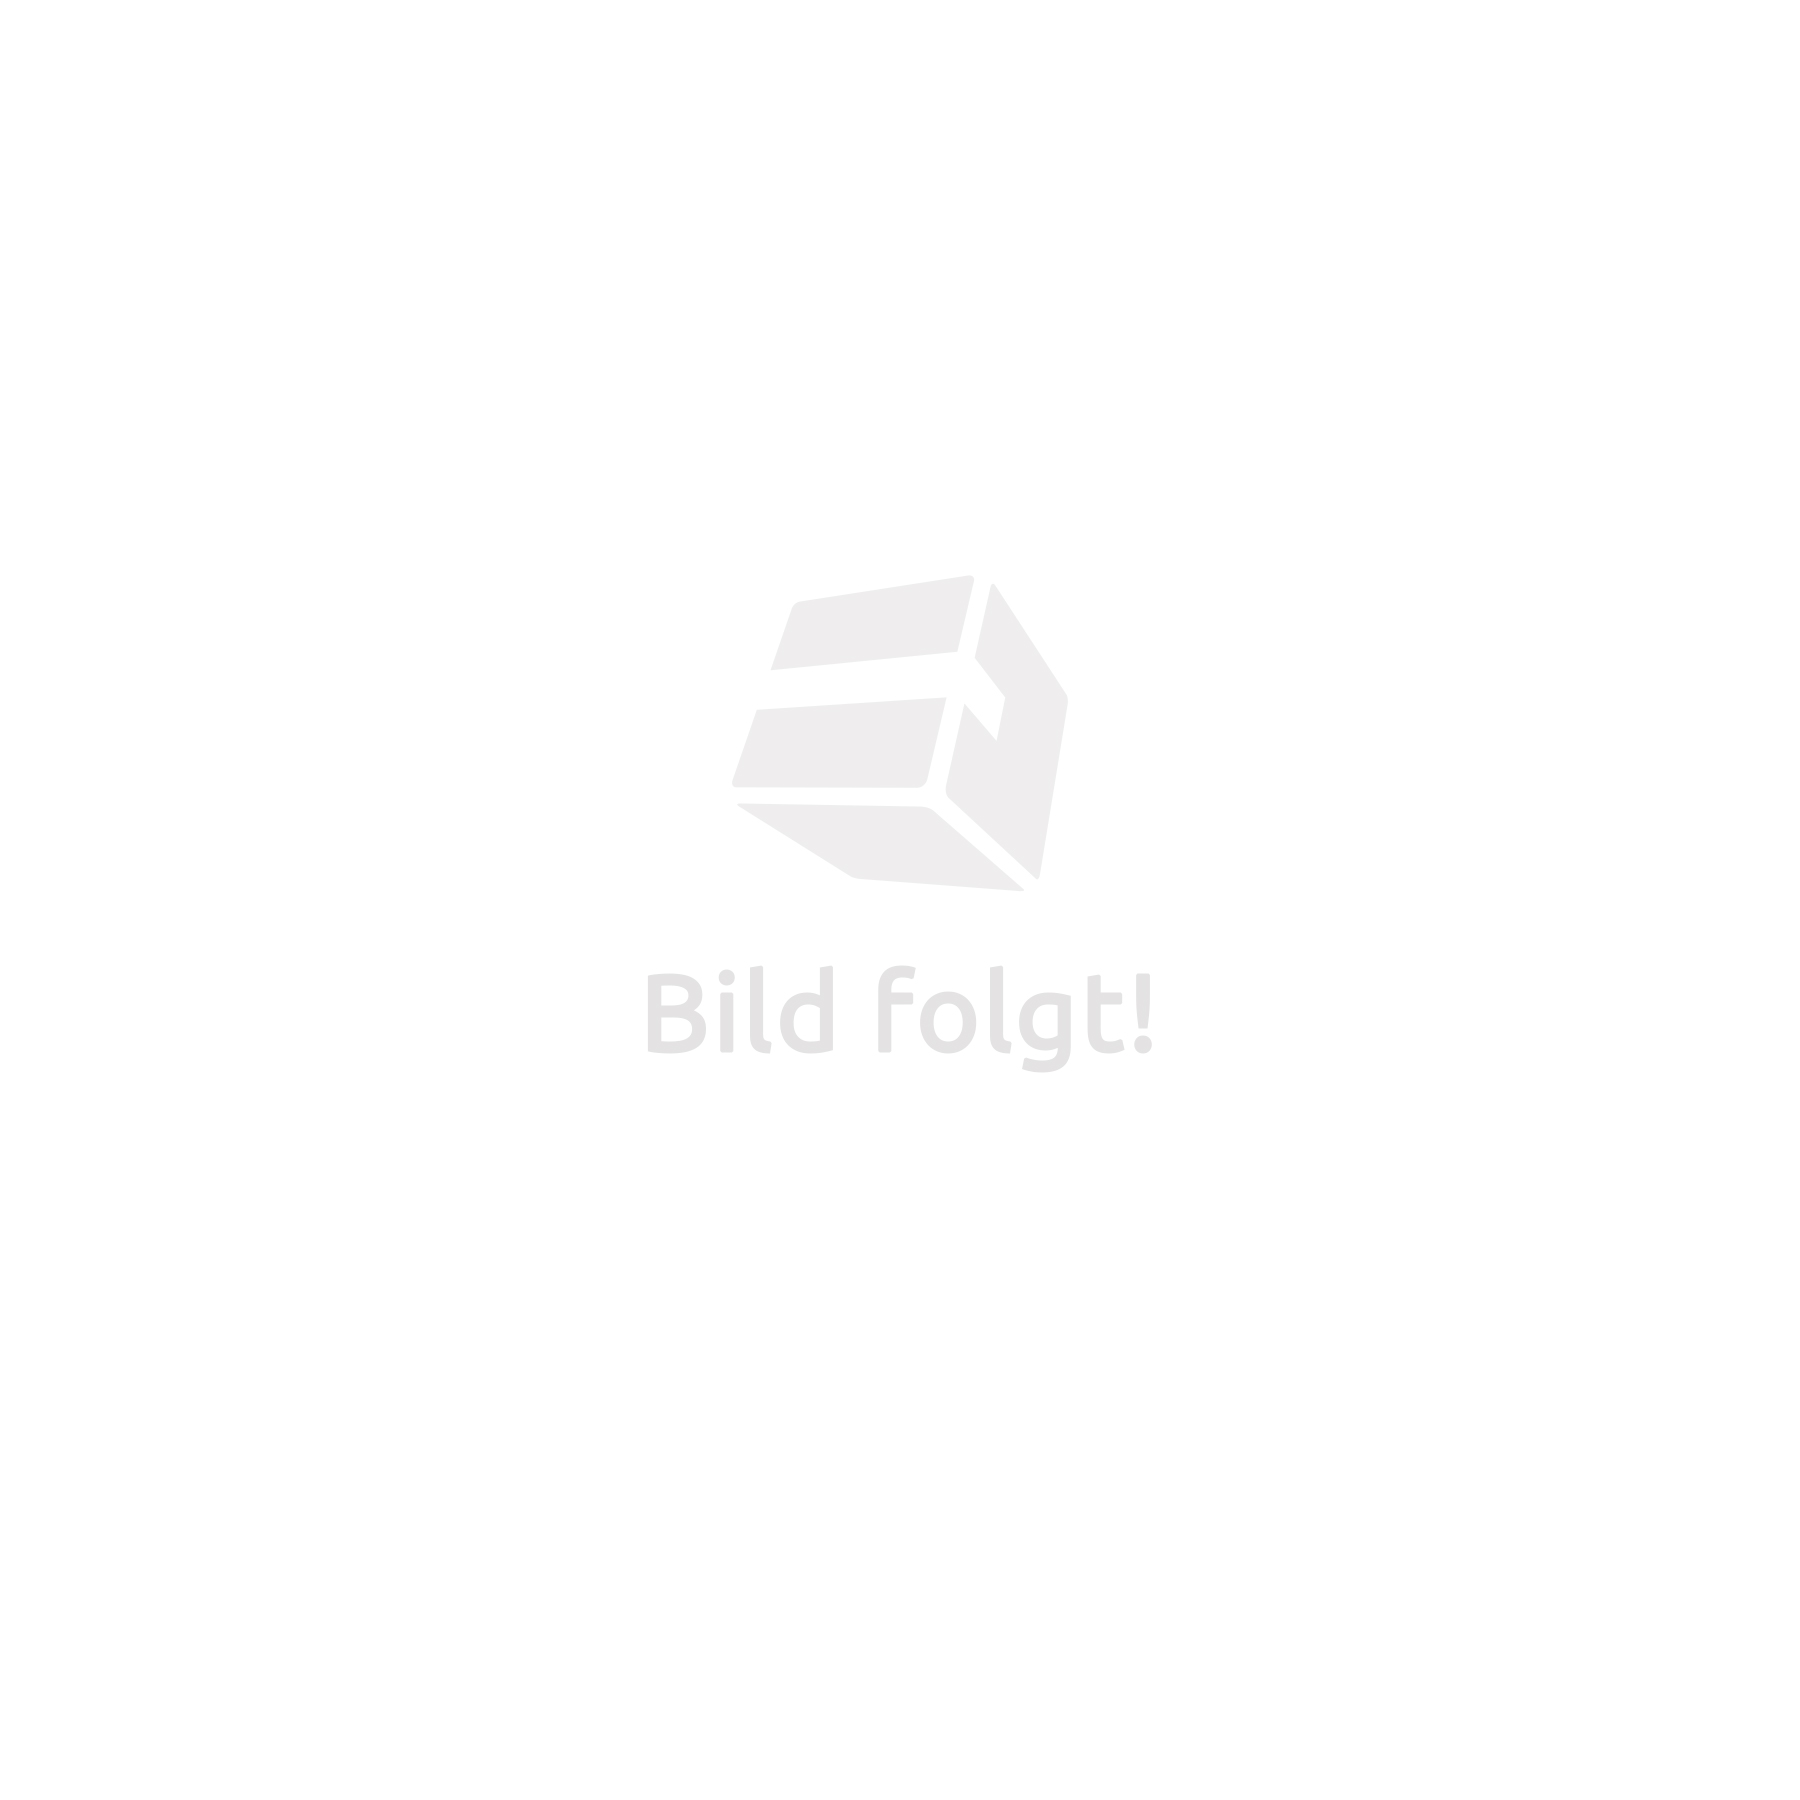 Faucet with LED lighting